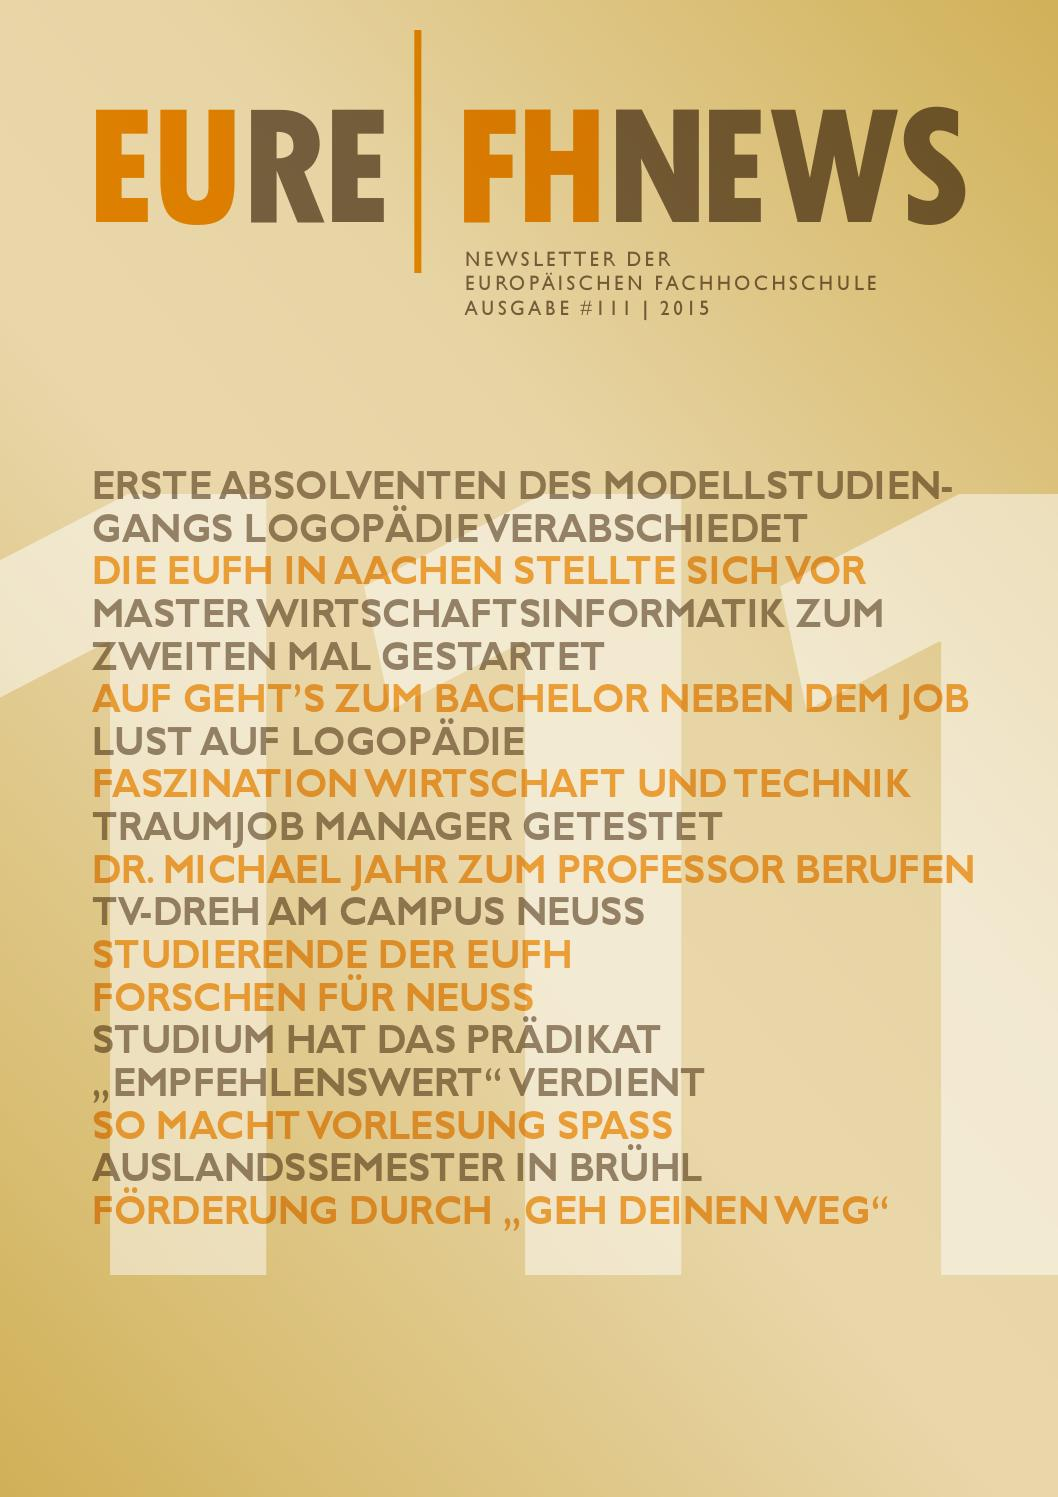 EUFH News Ausgabe 111 by EUFH - issuu